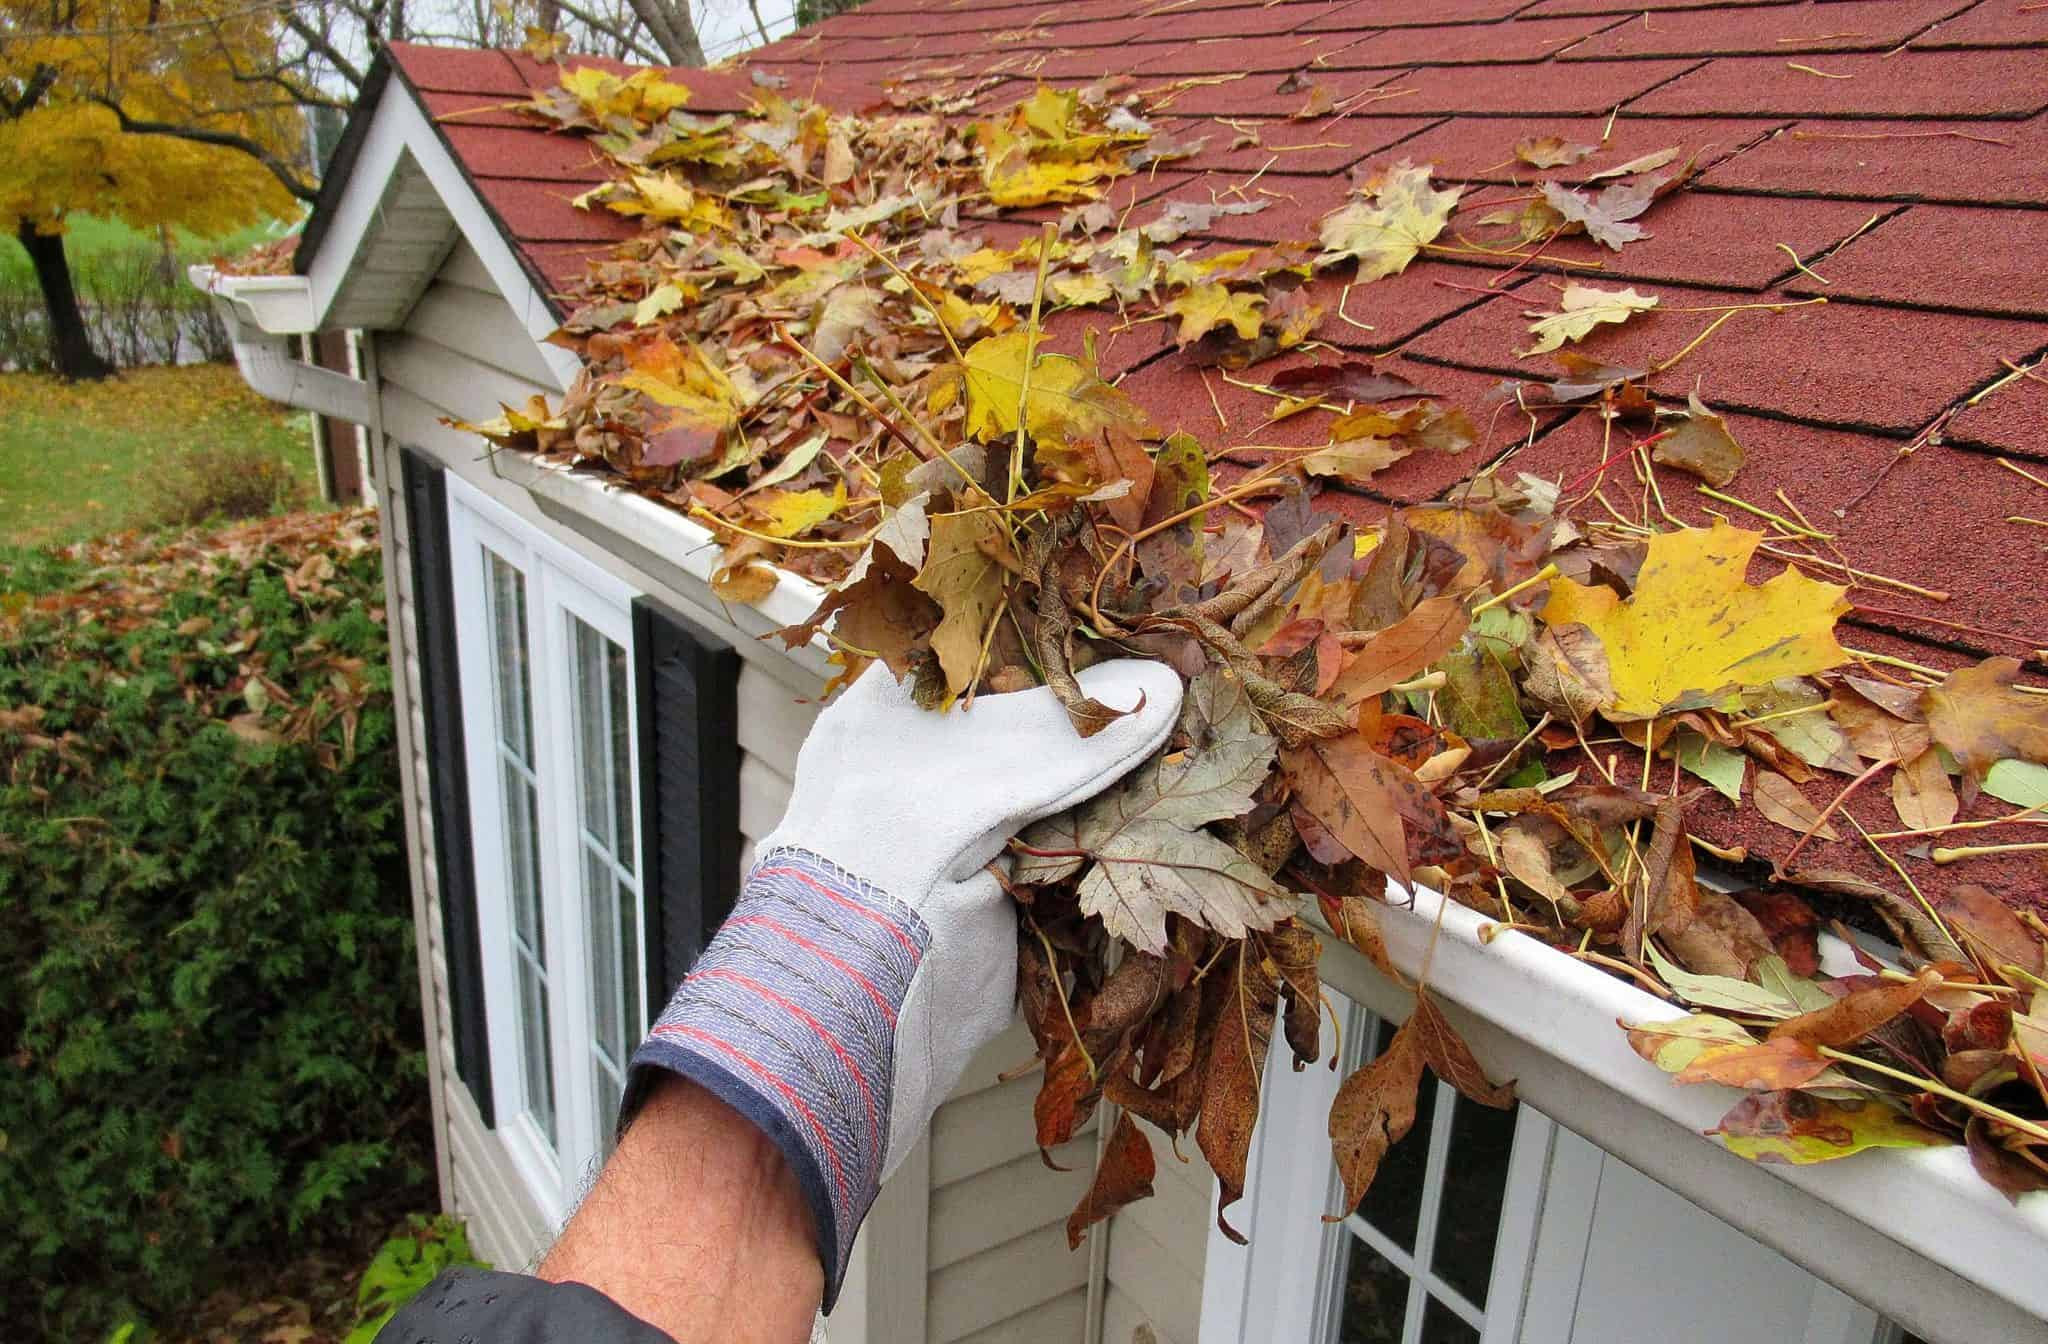 How To Clean Your Gutter